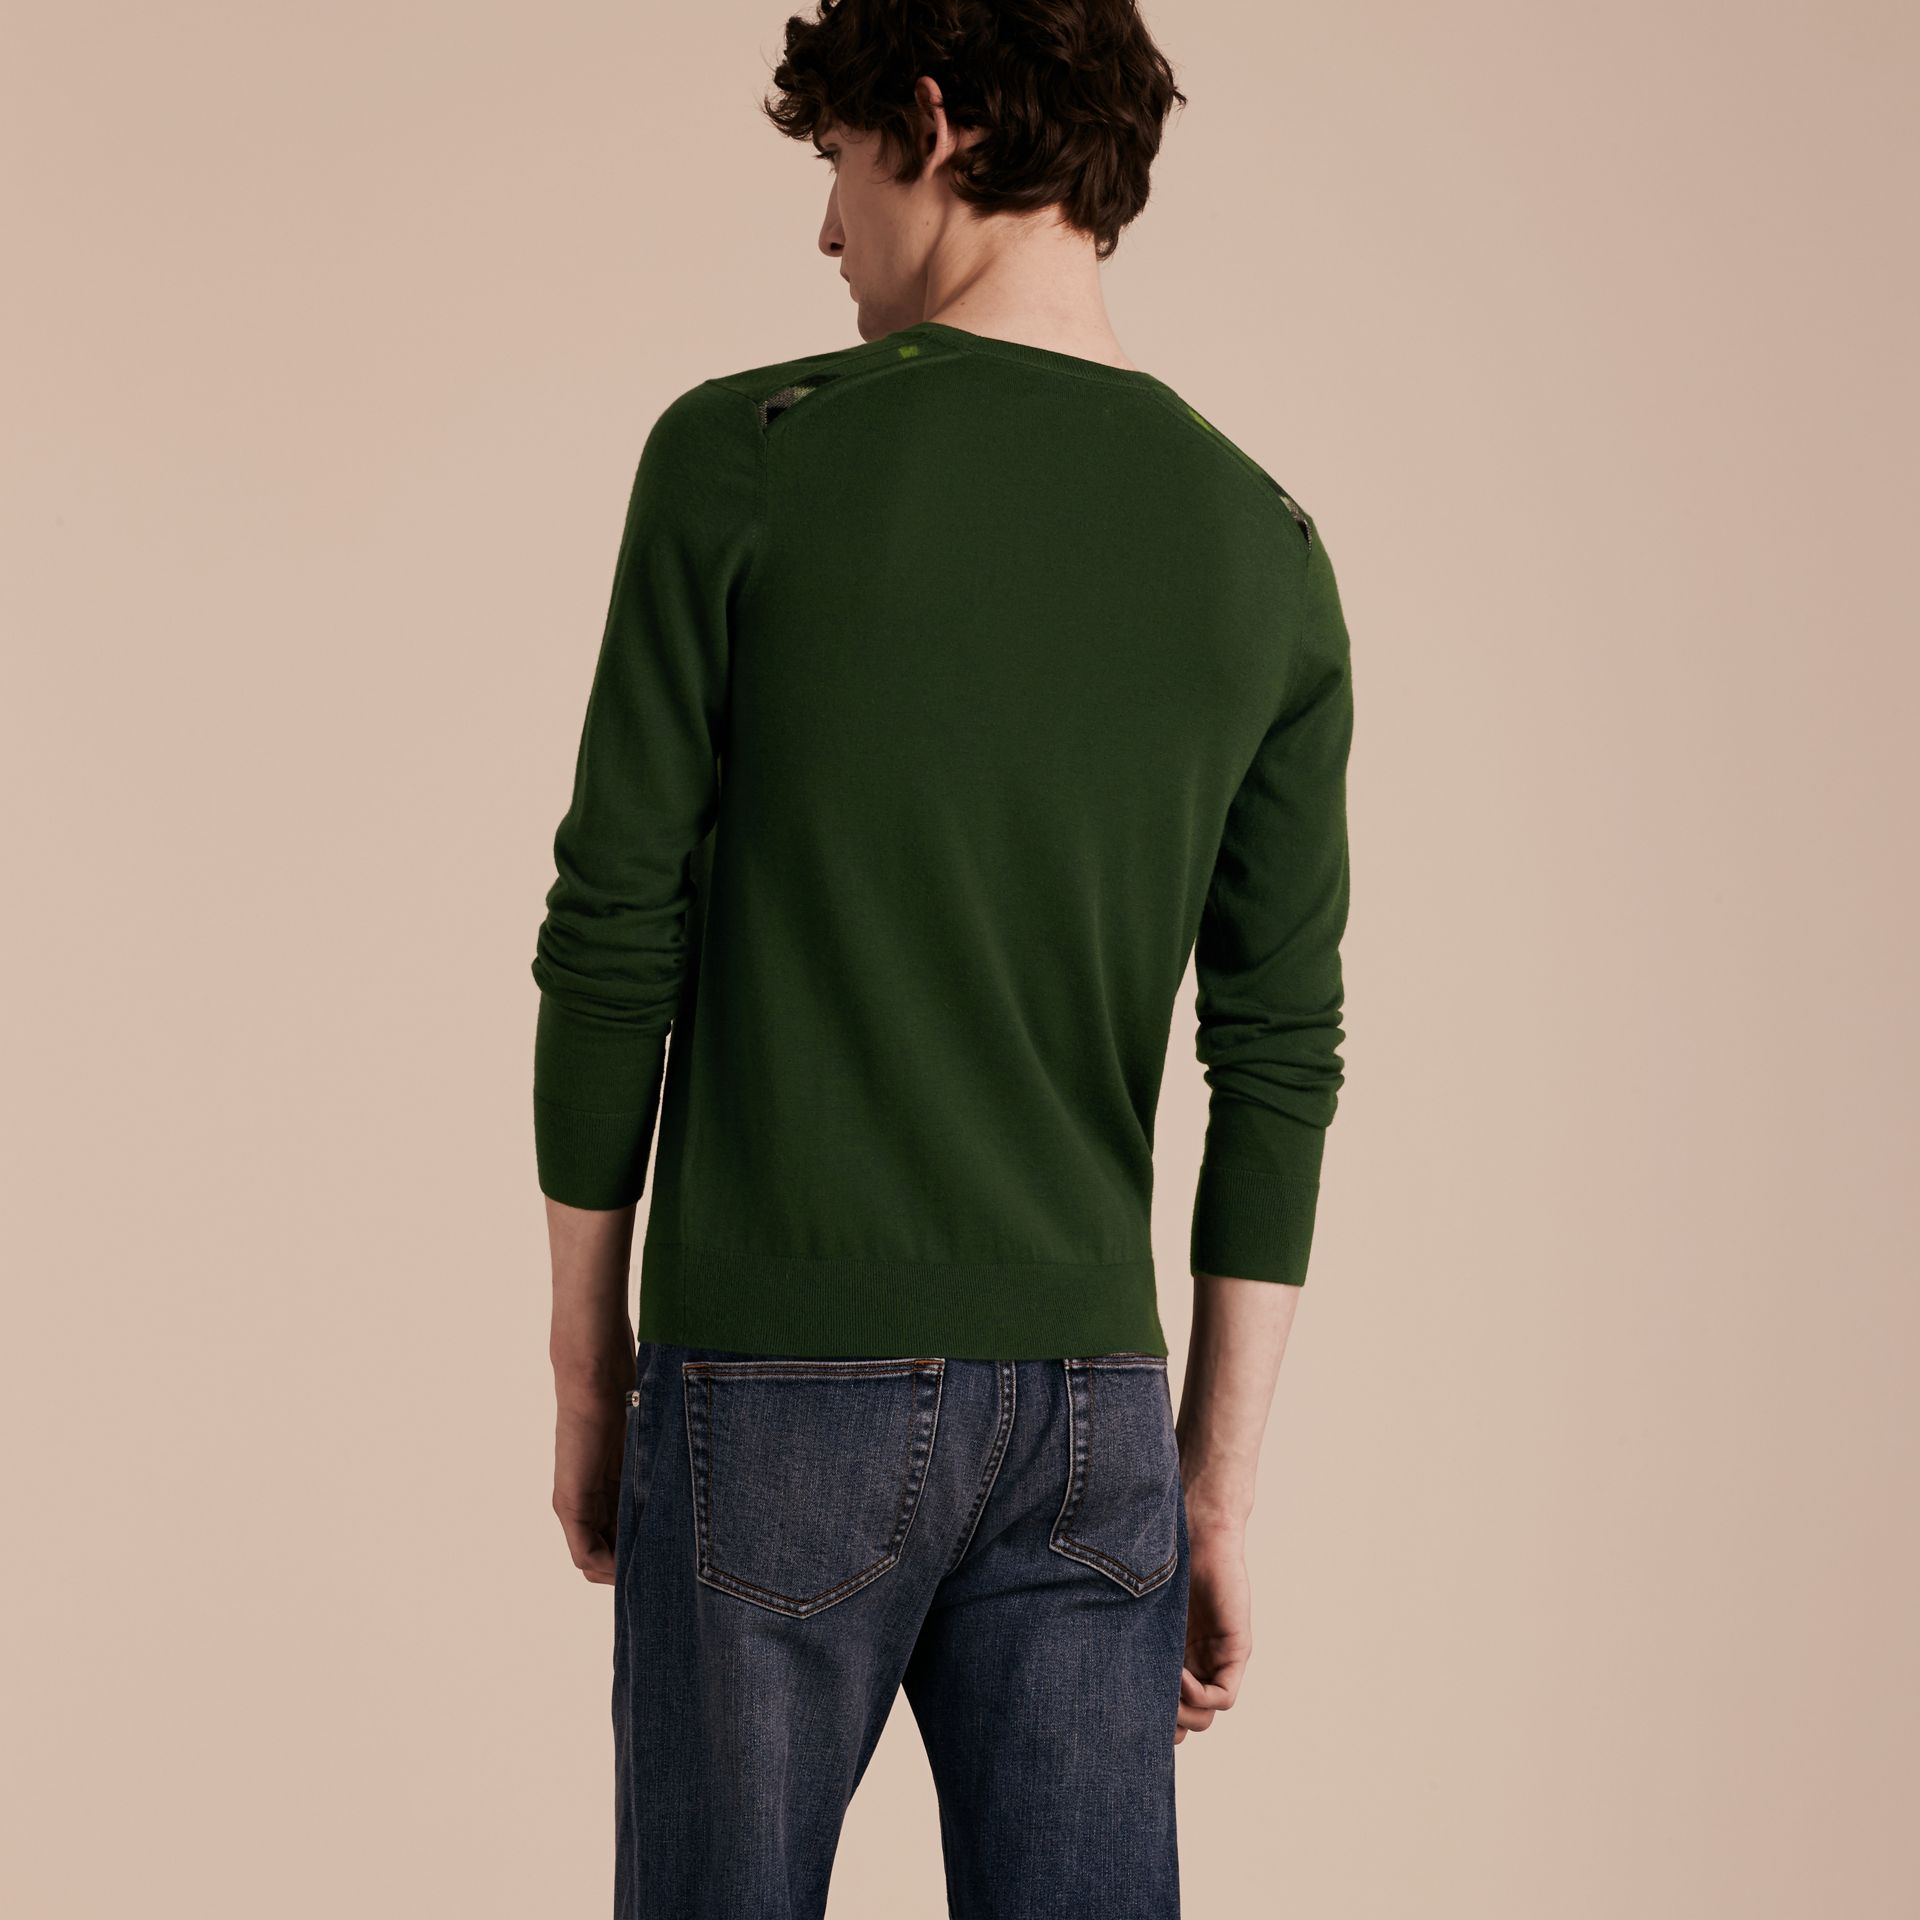 Olive green Lightweight Crew Neck Cashmere Sweater with Check Trim Olive Green - gallery image 3